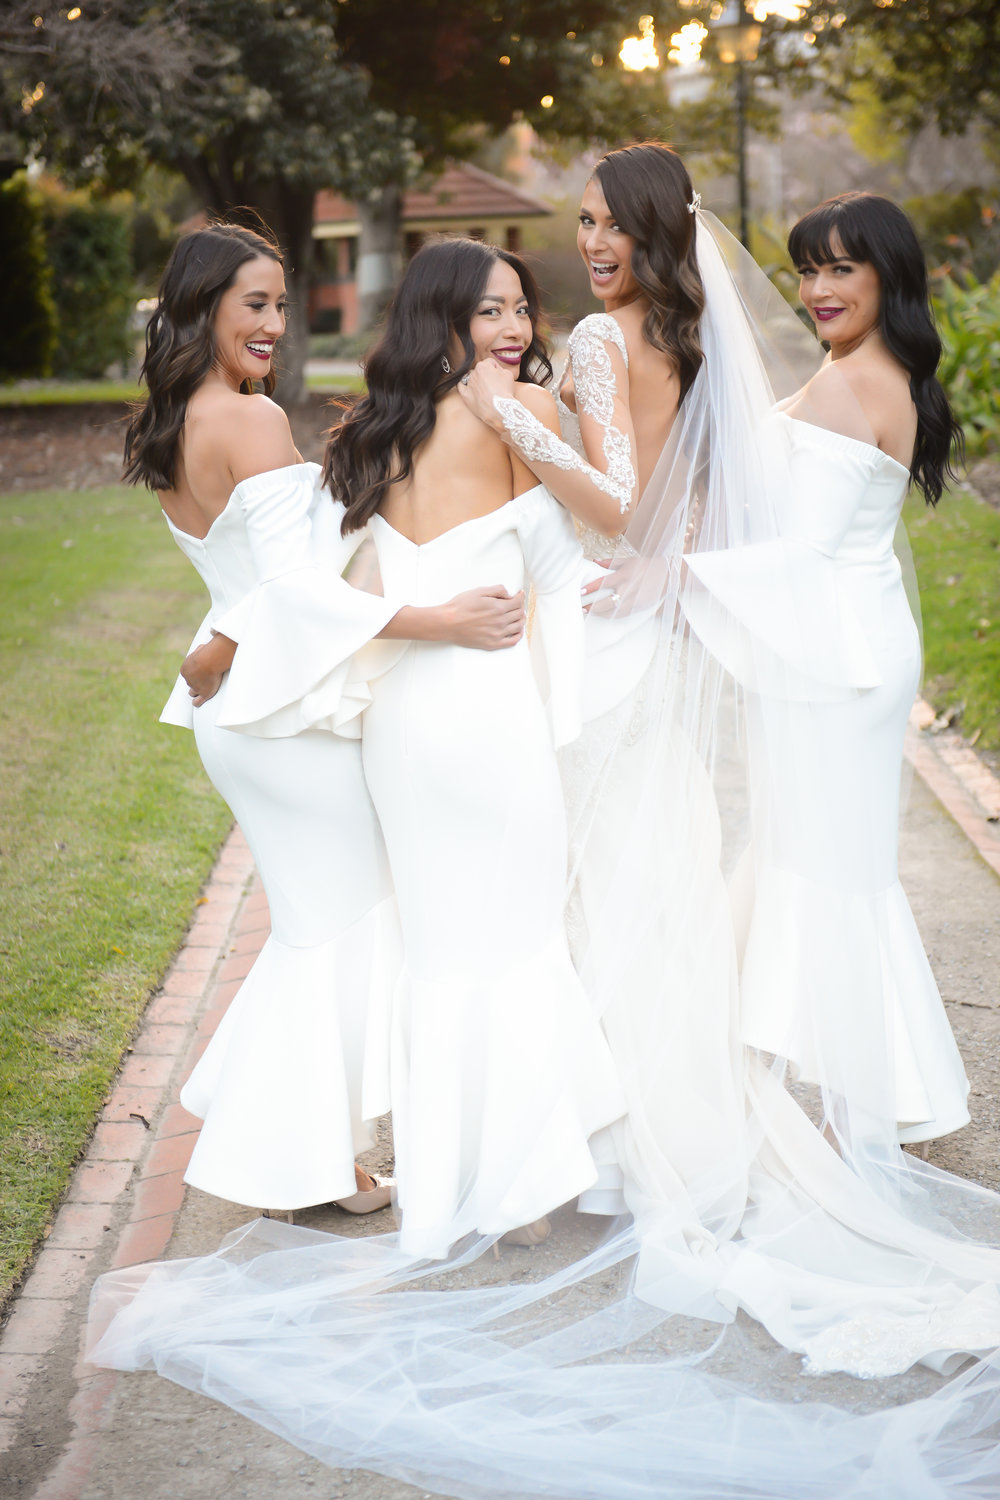 ATEIA Photography & Video - www.ATEIAphotography.com.au - Wedding Photography Melbourne (996 of 1356).jpg